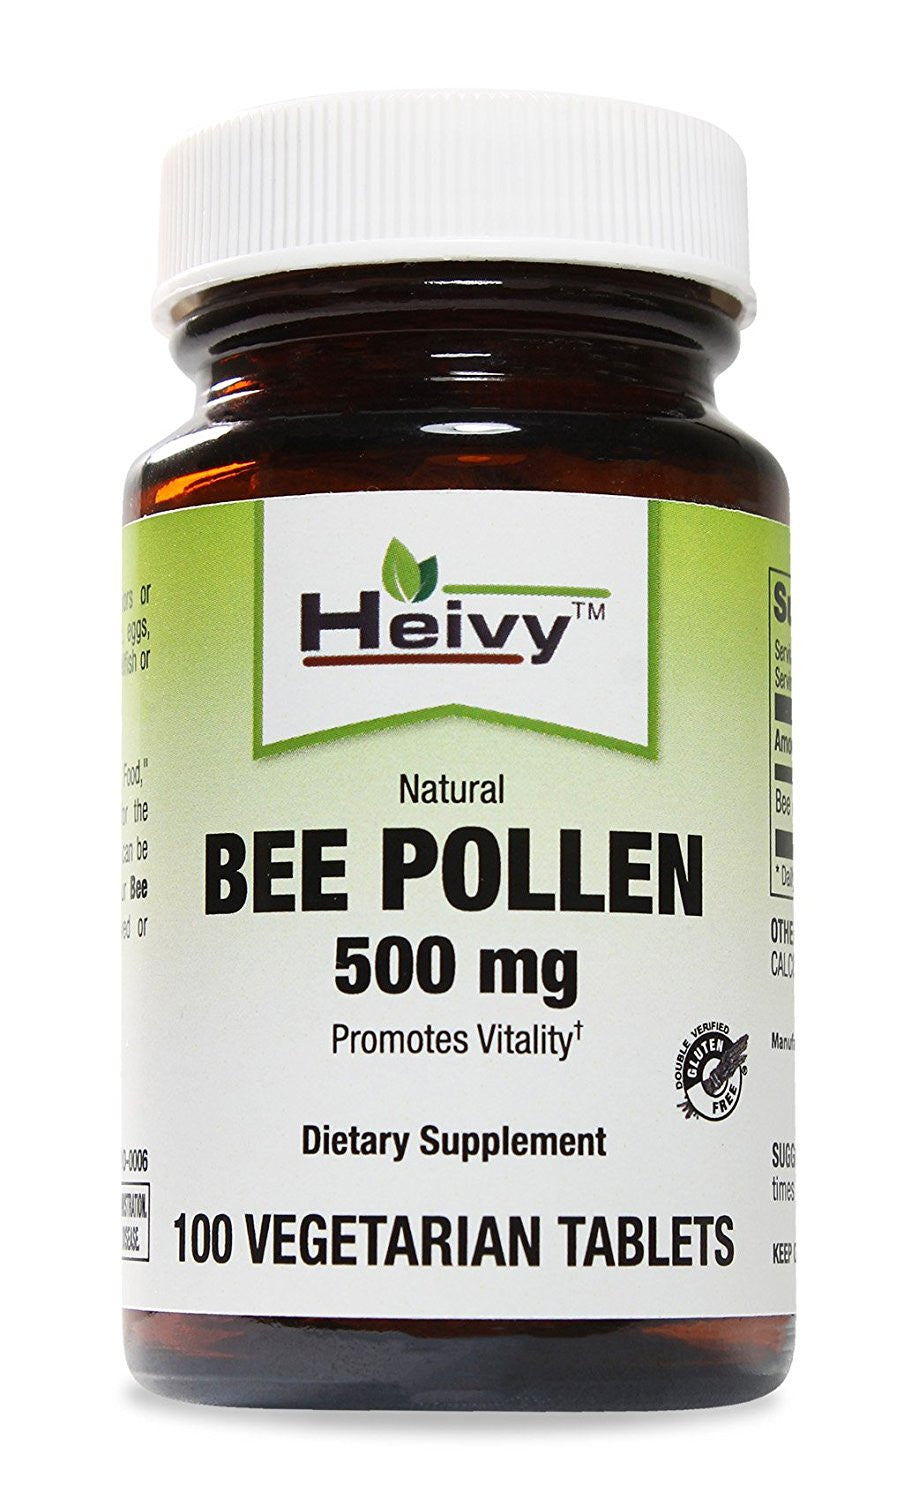 Natural Bee Pollen 500 mg, 100 Veg Tabs